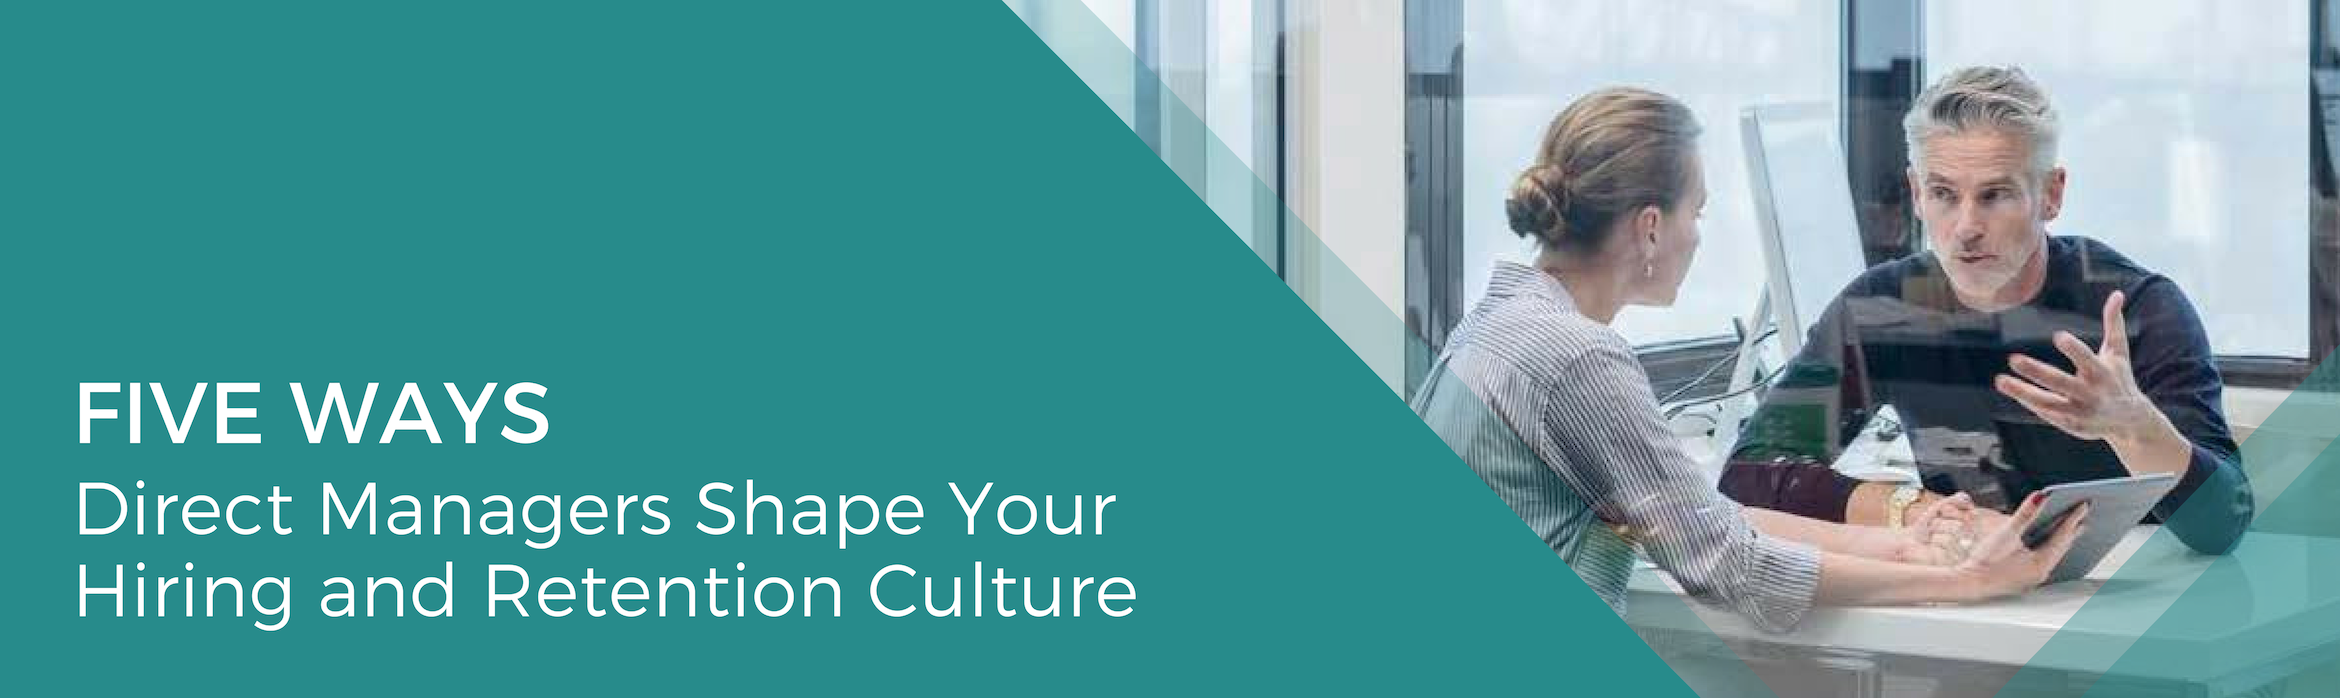 5 Ways Direct Managers Shape Your Hiring and Retention Culture